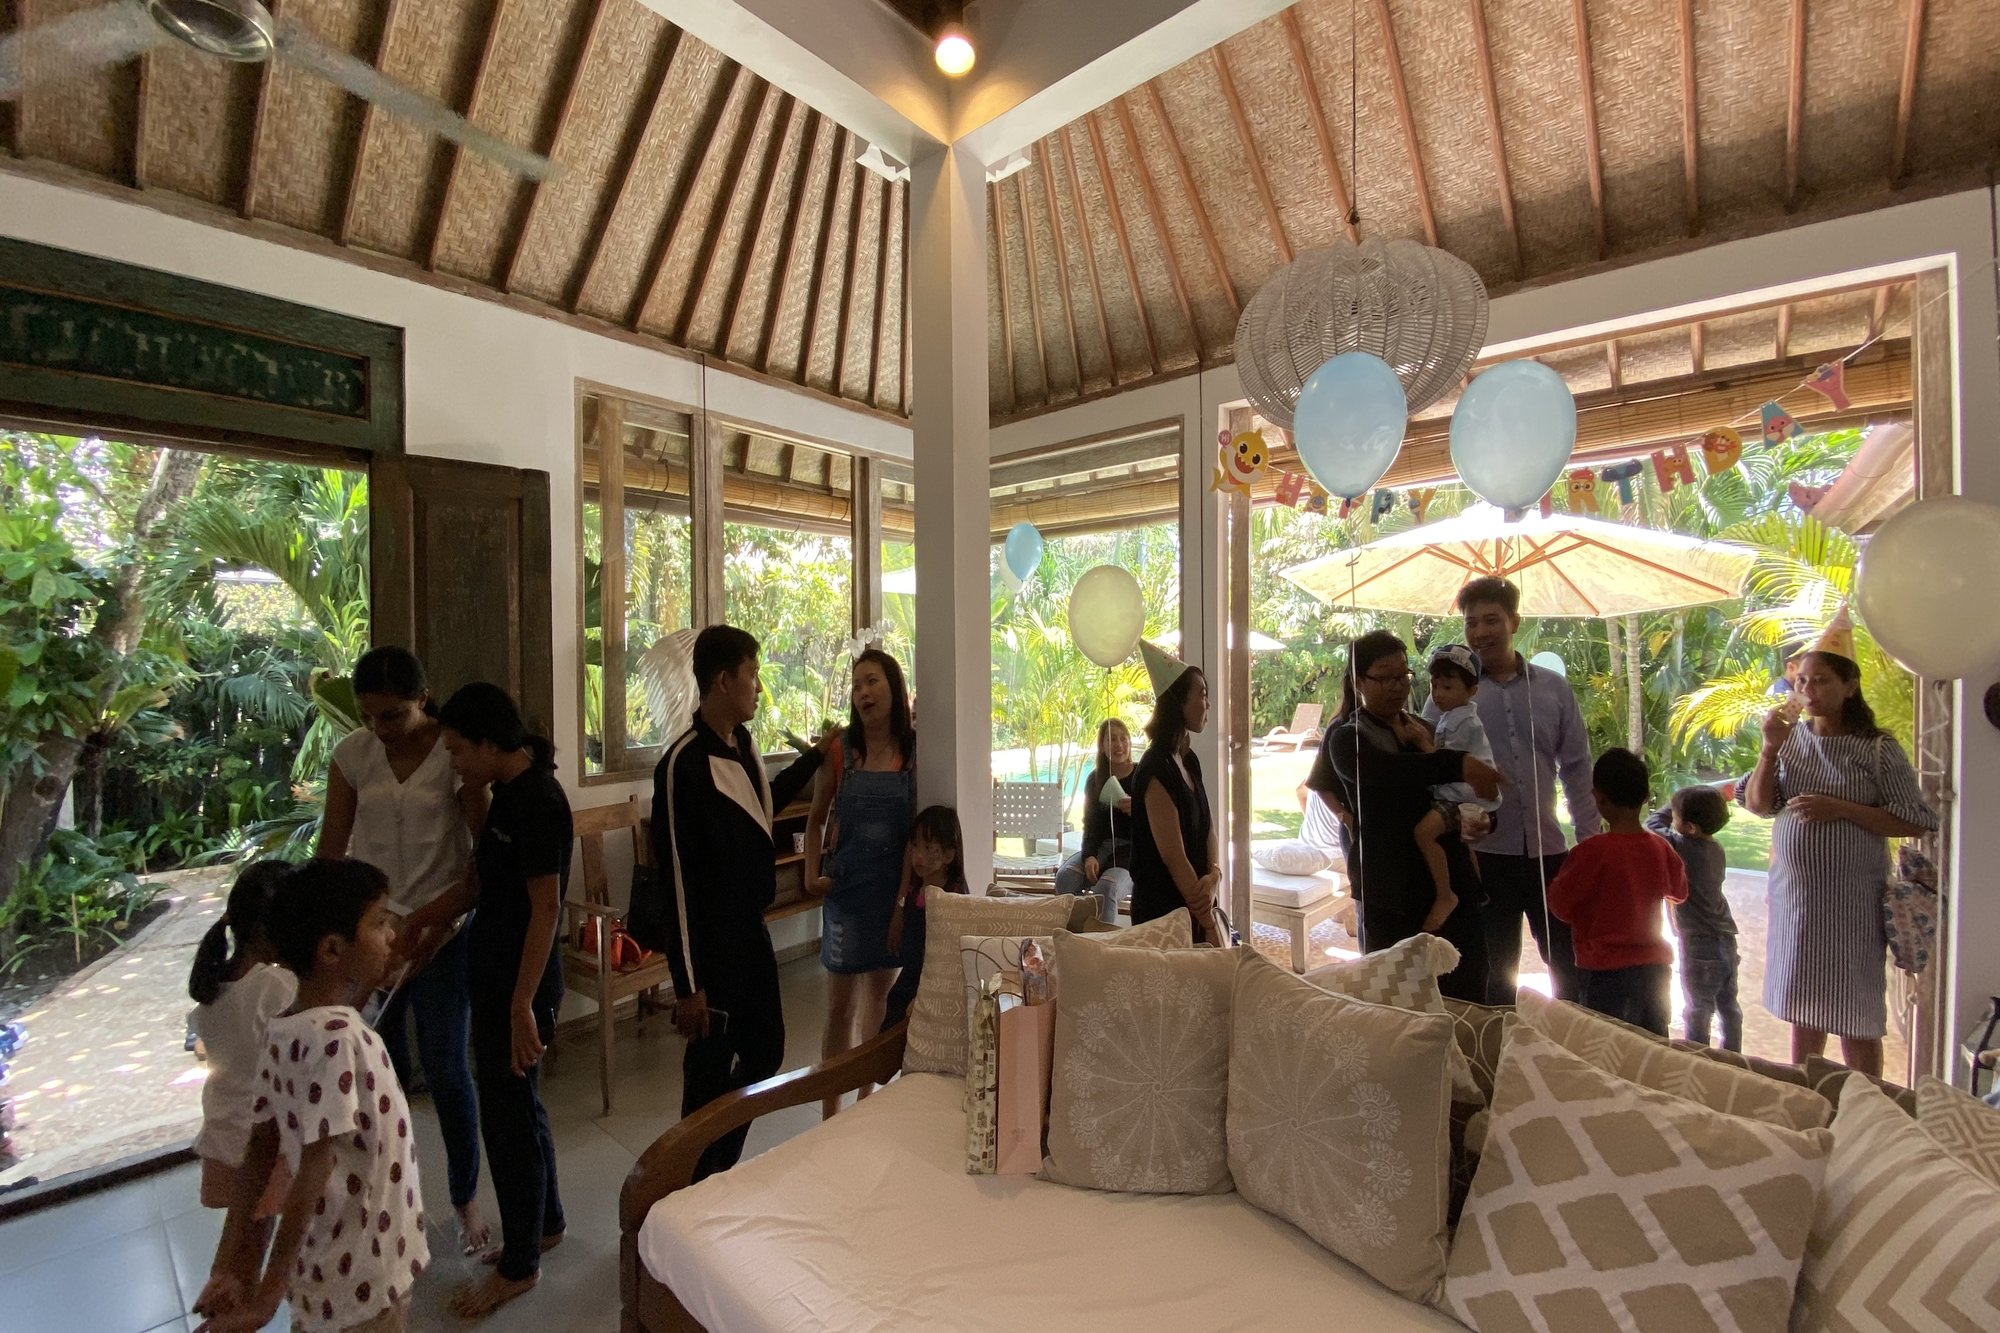 Kid's Birthday Party in Seminyak Villa: Our Experience